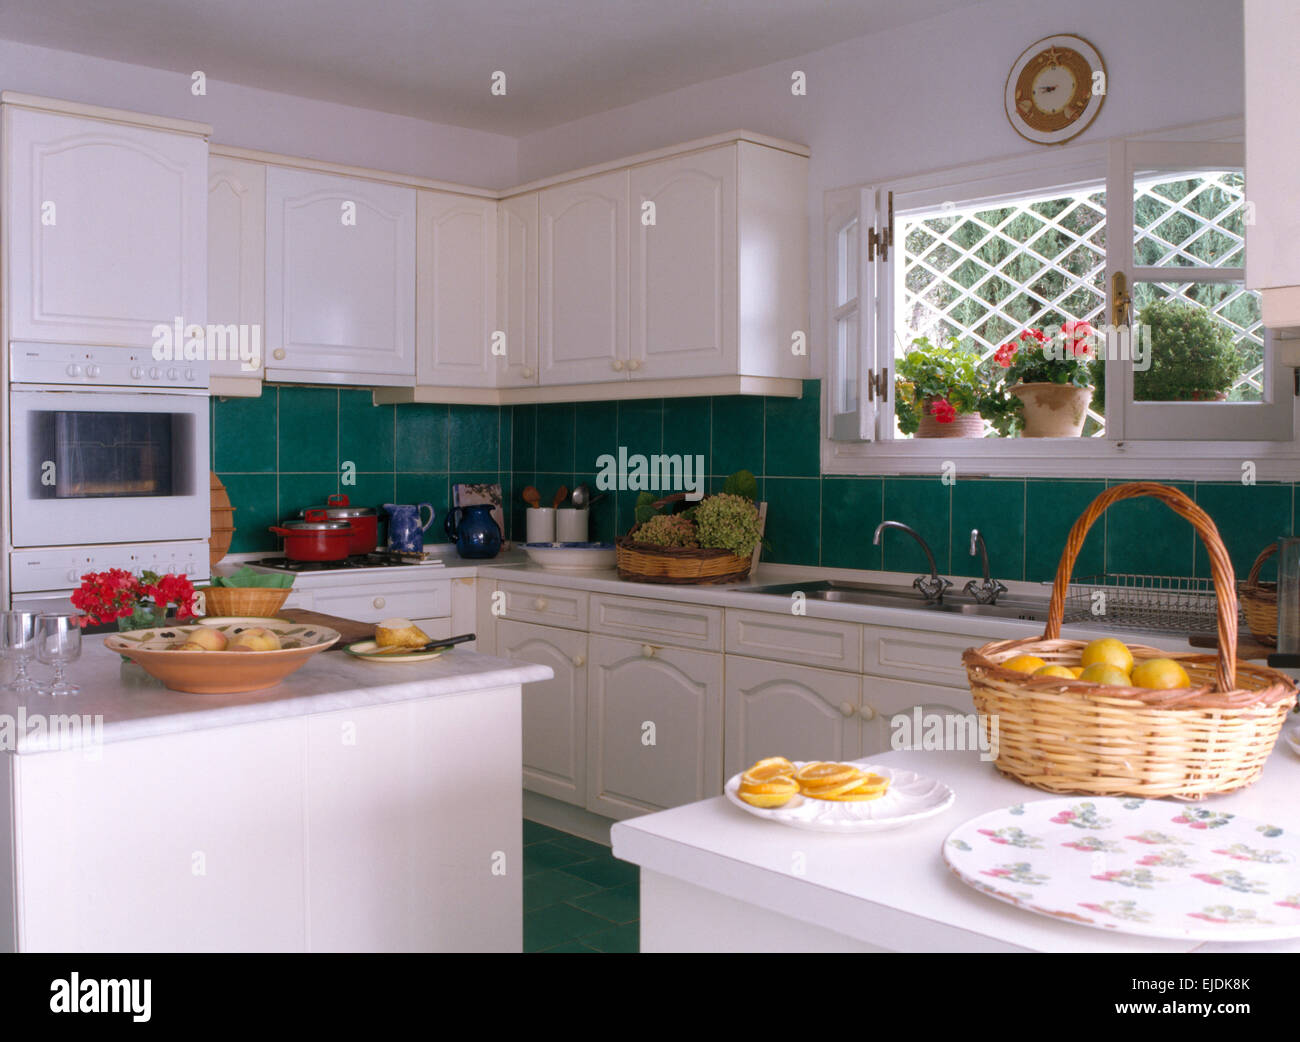 Interiors Traditional Green Kitchens Stockfotos & Interiors ...